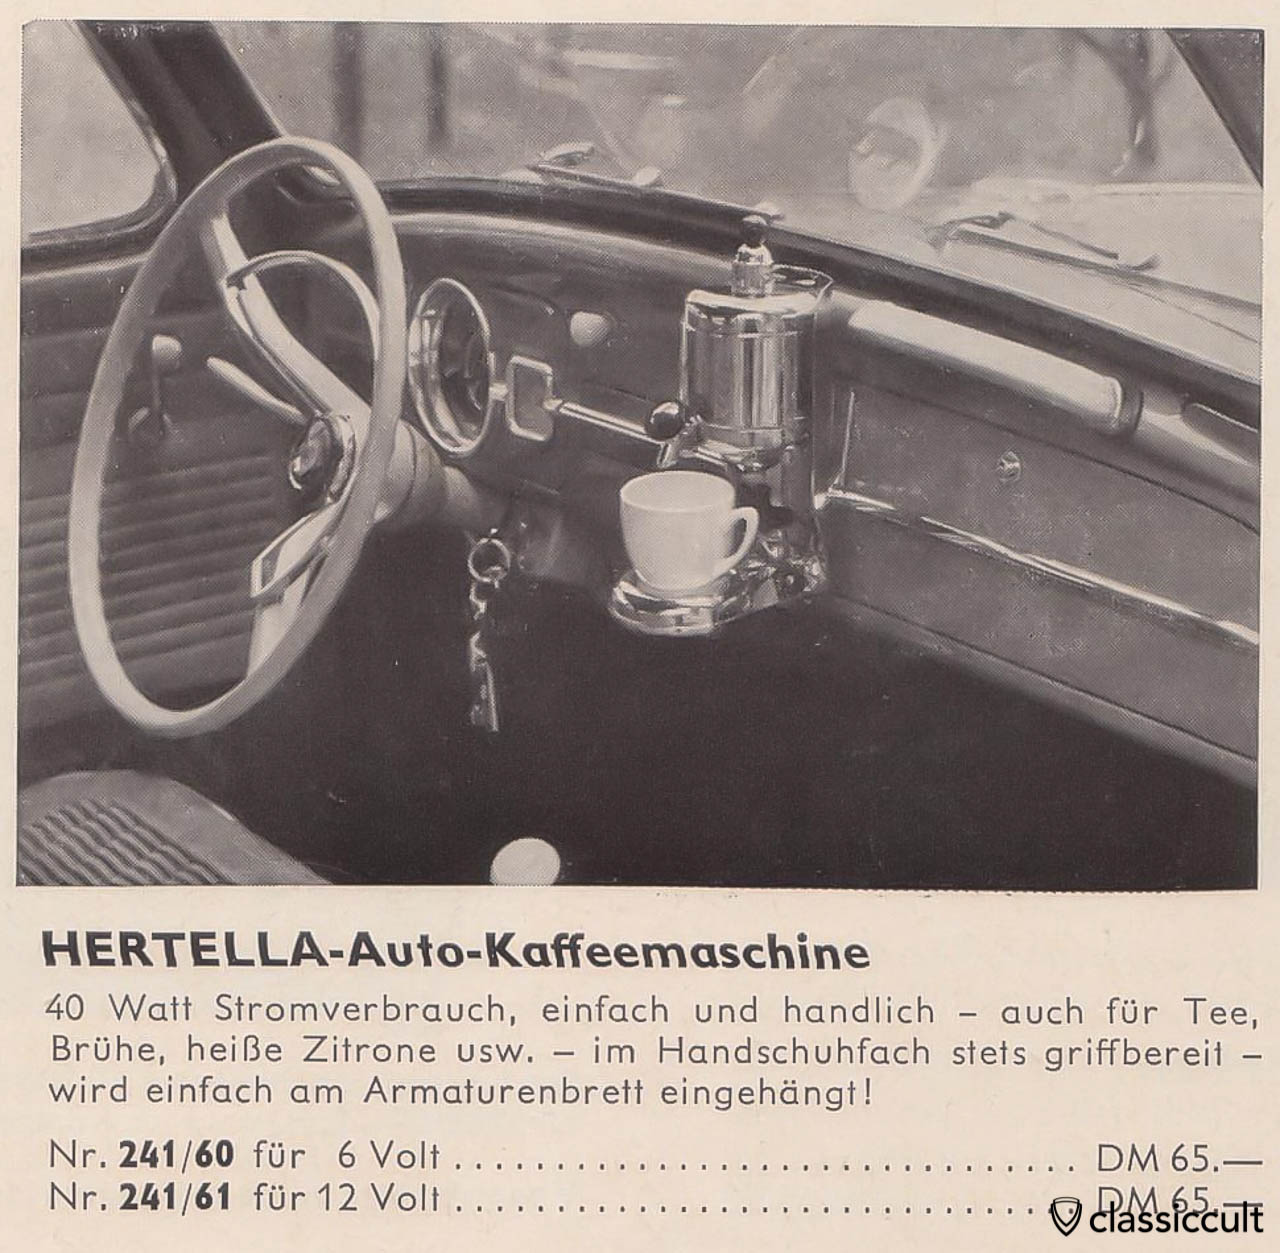 vw-bug-1959-coffee-machine-hertella.jpg